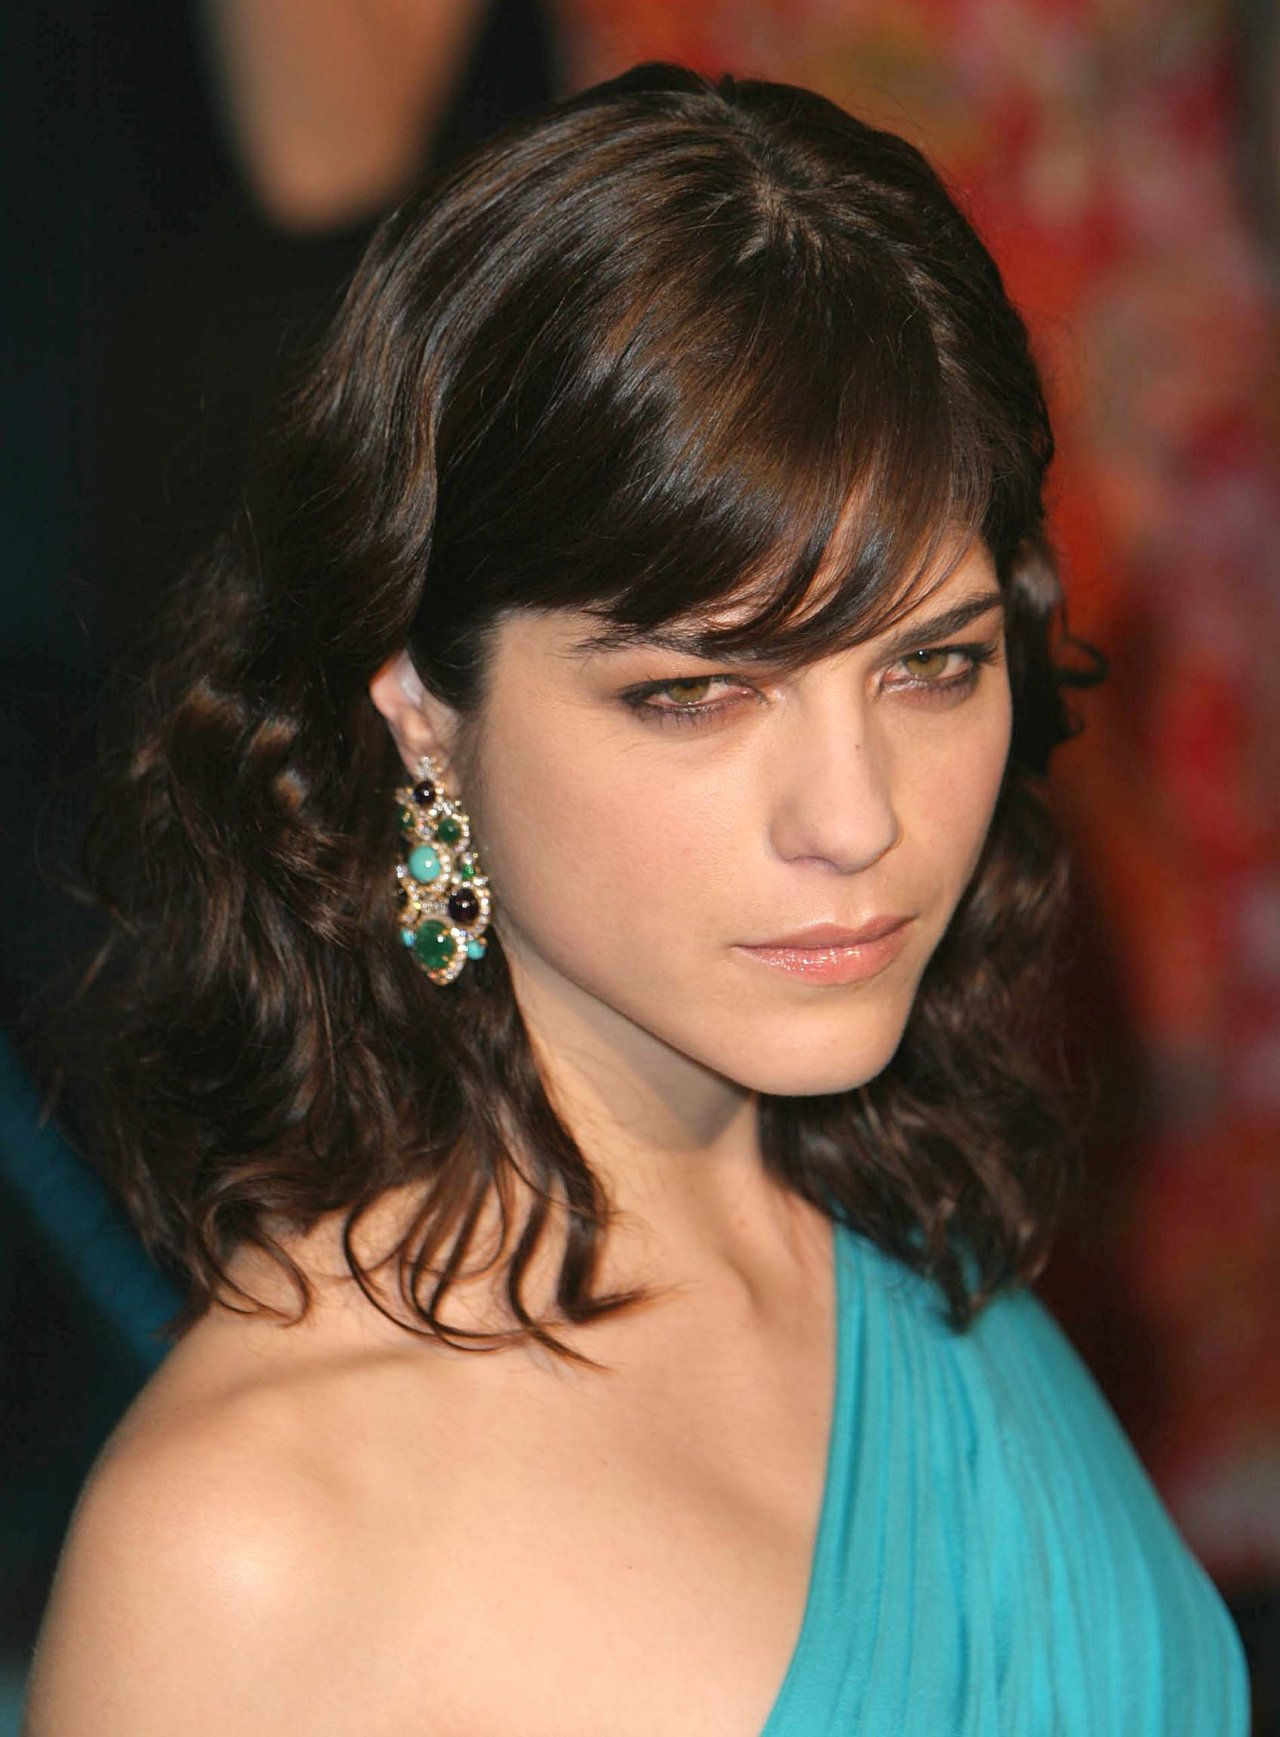 Selma Blair Bra Size Age Weight Height Measurements